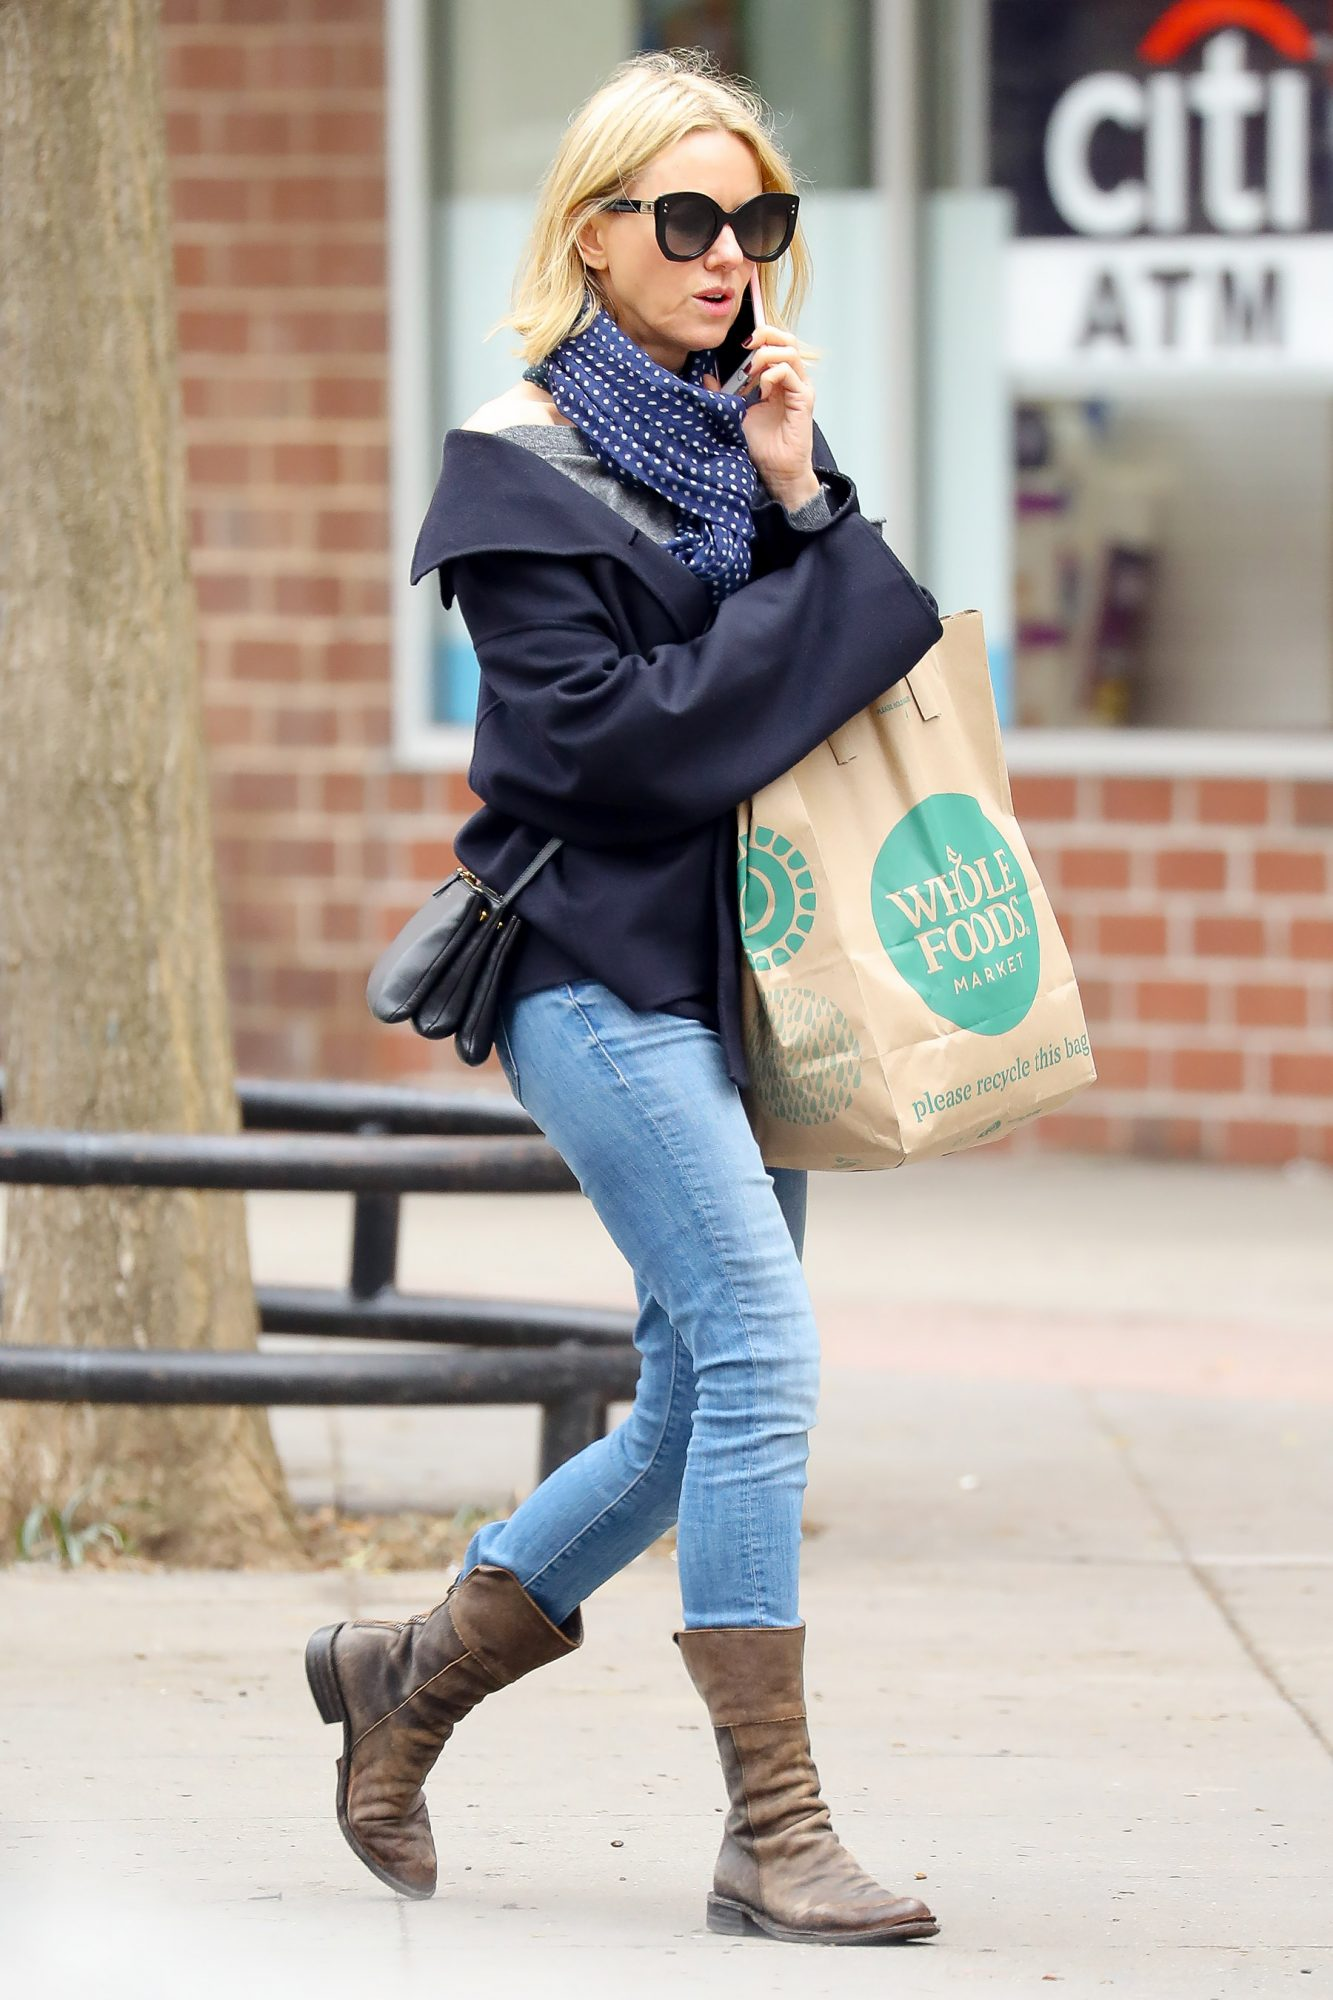 EXCLUSIVE: Naomi Watts takes a trip to the Whole Foods to buy her groceries in New York City